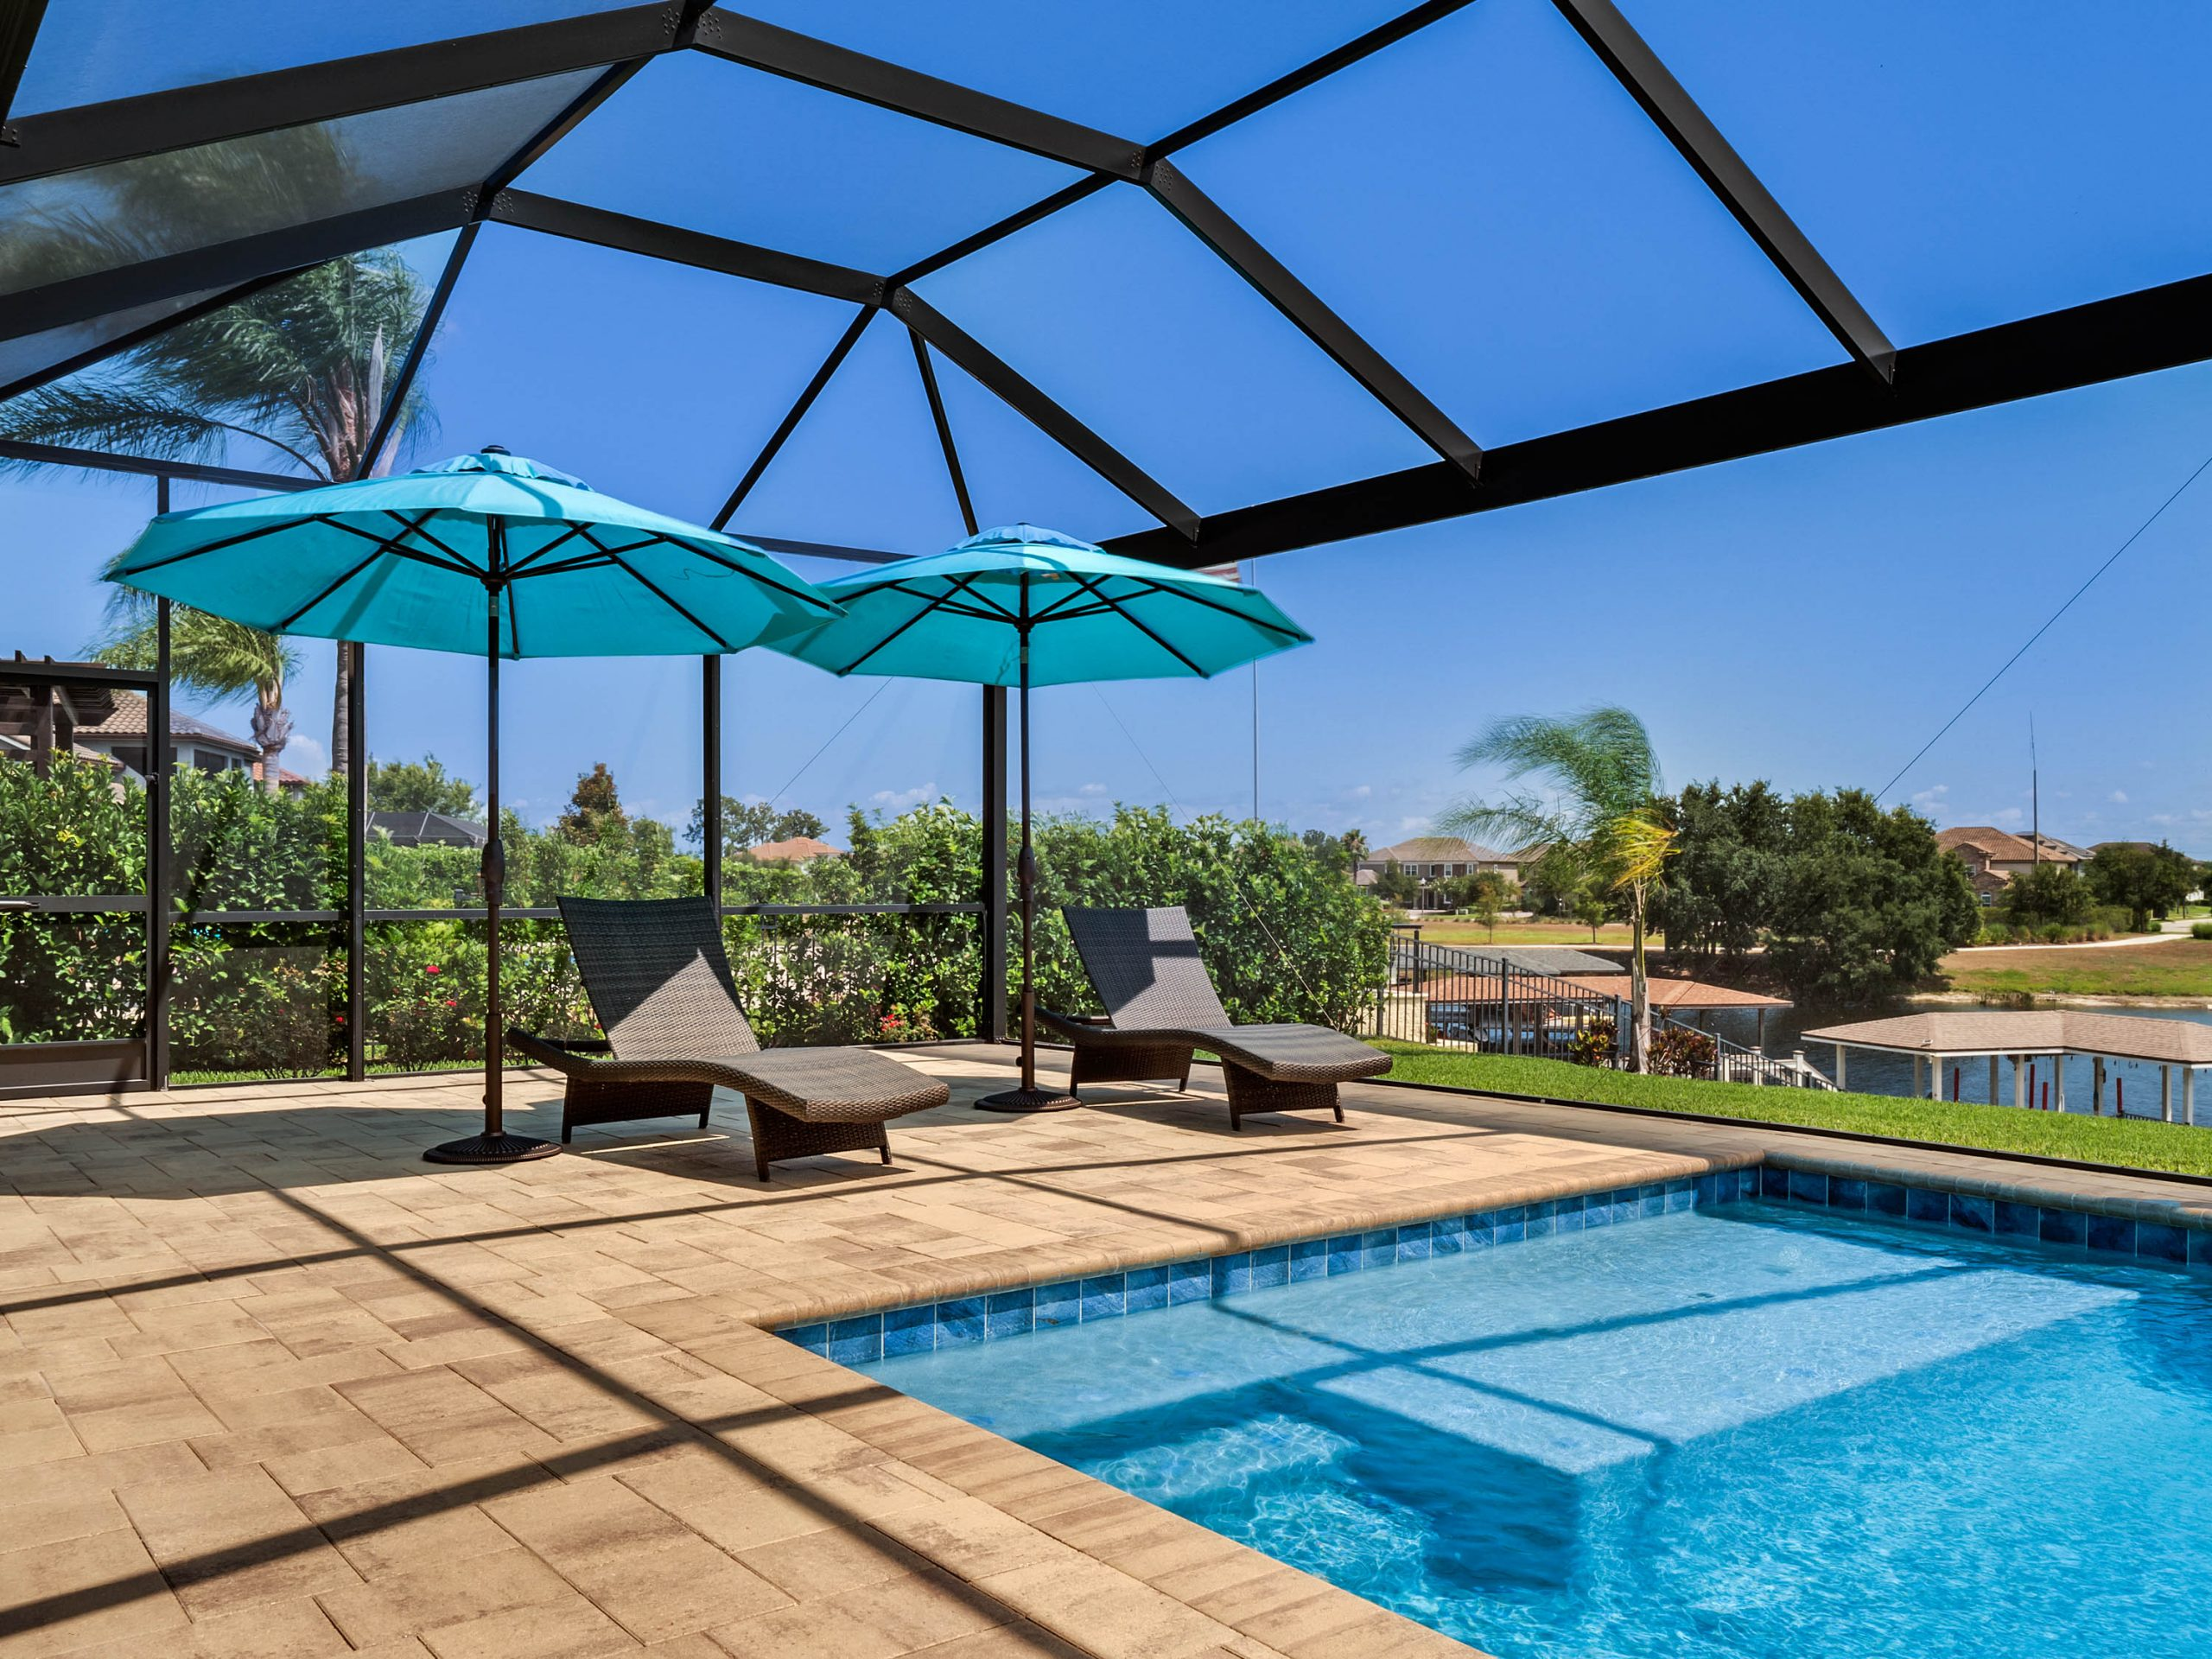 2021 2nd Quarter Winter Garden Real Estate Market Report by RTR